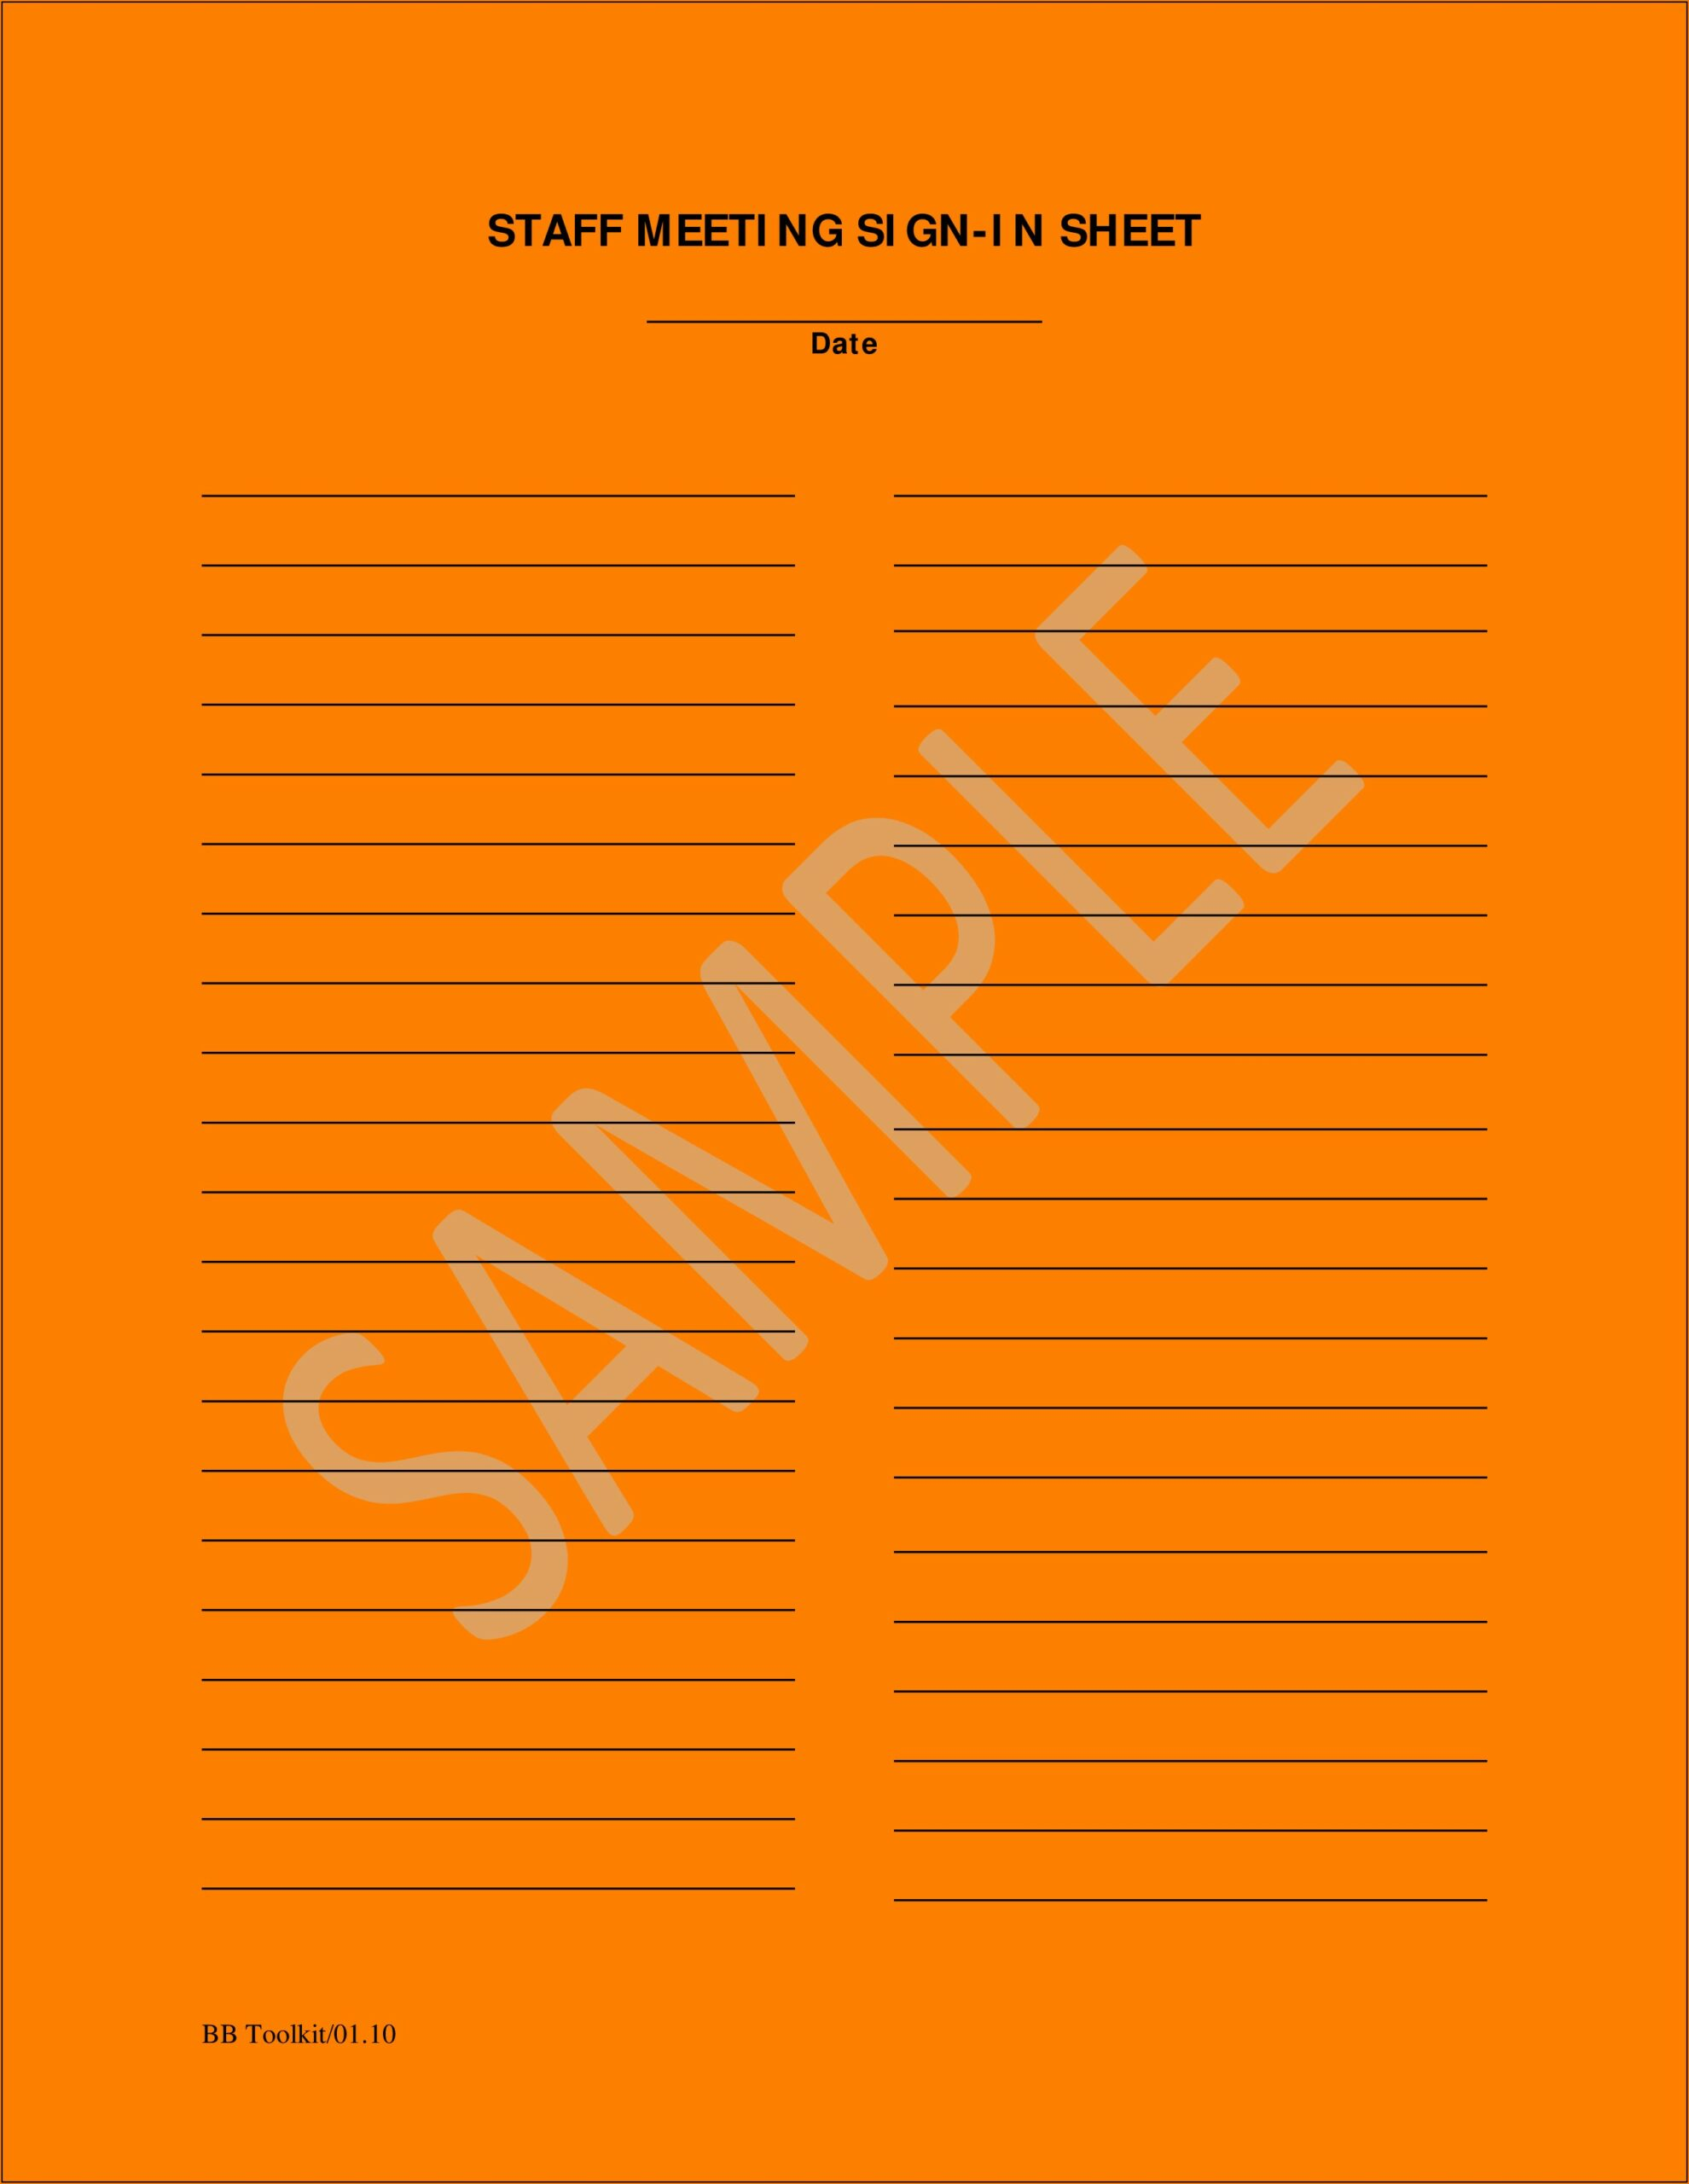 Employee Meeting Sign In Sheet Template